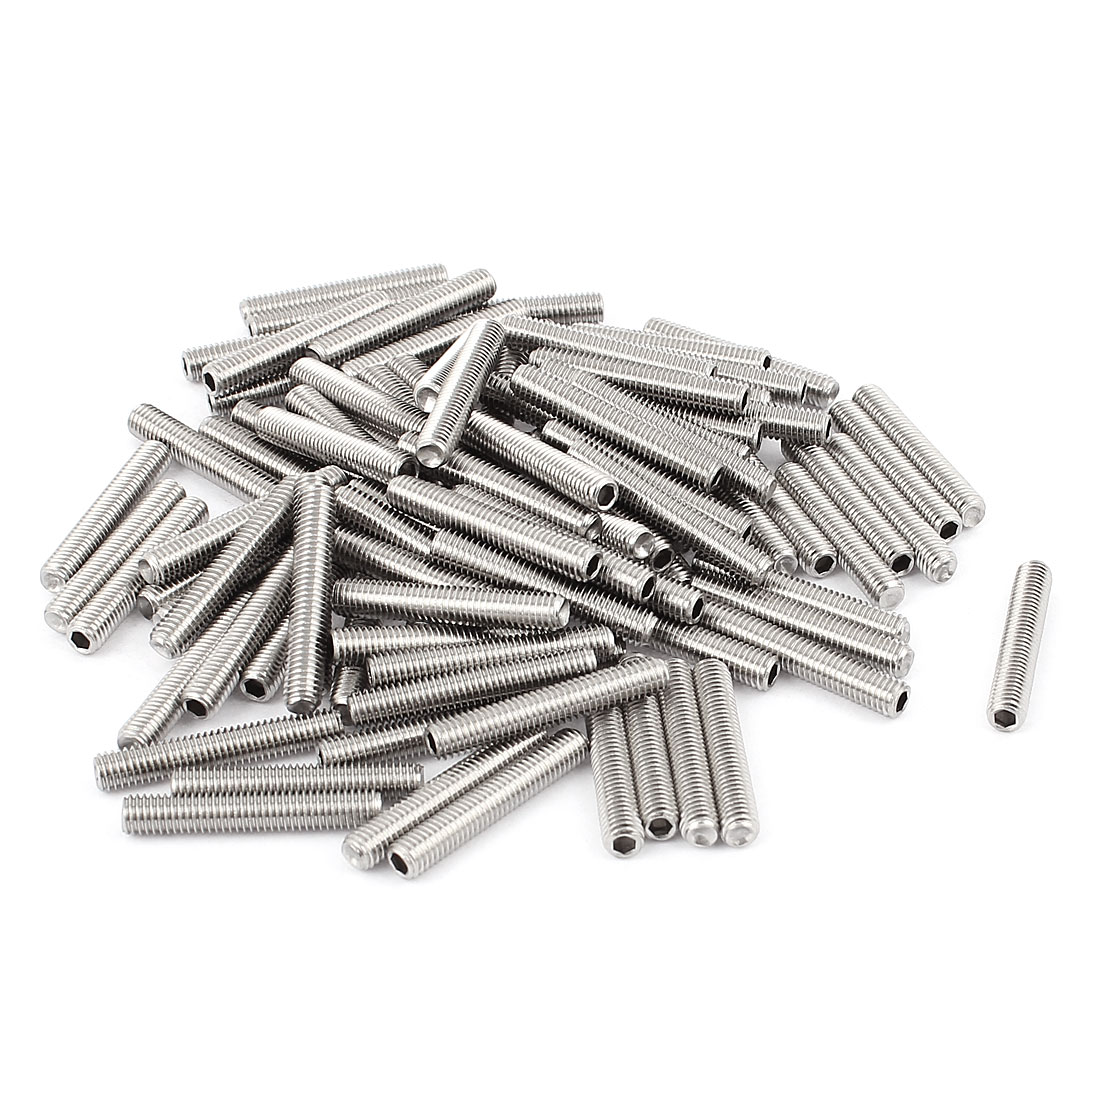 M5x30mm Stainless Steel Hex Socket Set Cap Point Grub Screws Silver Tone 100Pcs